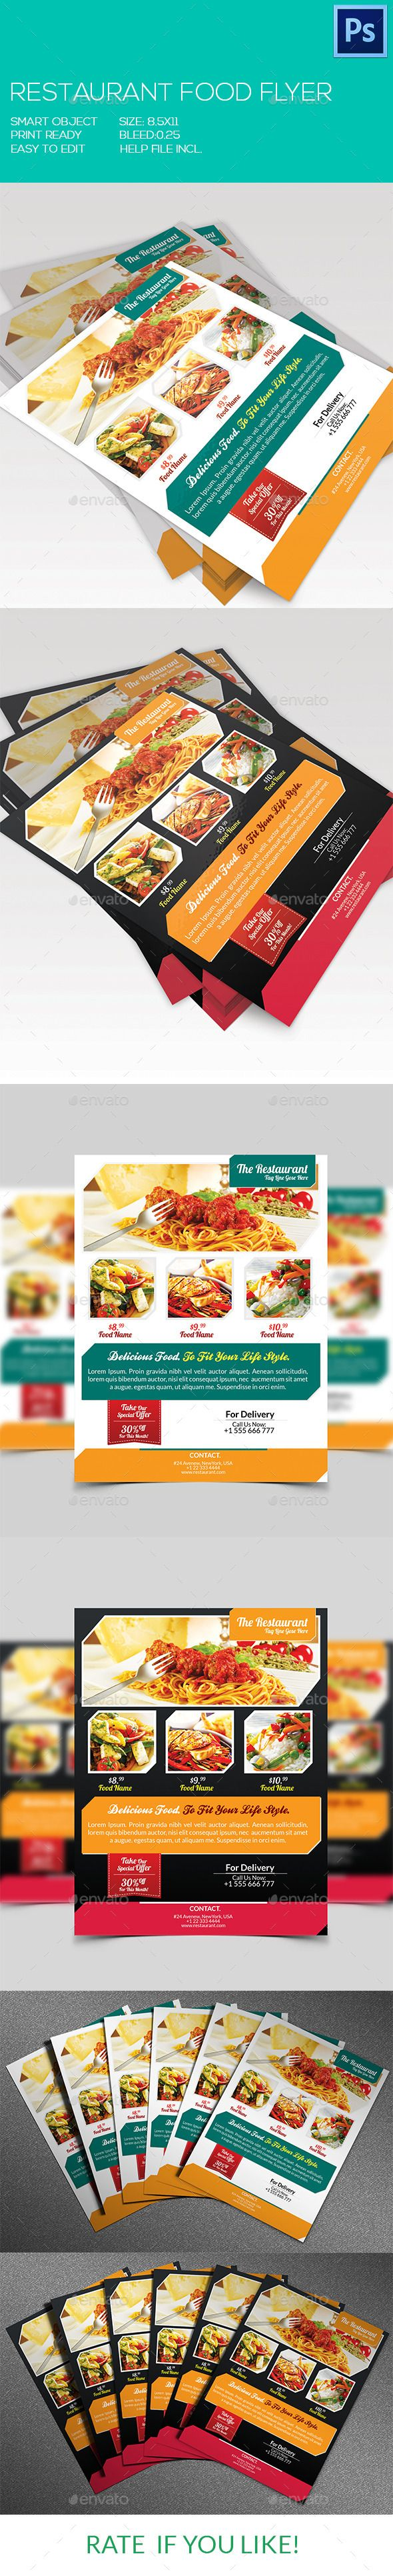 Restaurant Food Flyer  Restaurant Food Flyer Template And